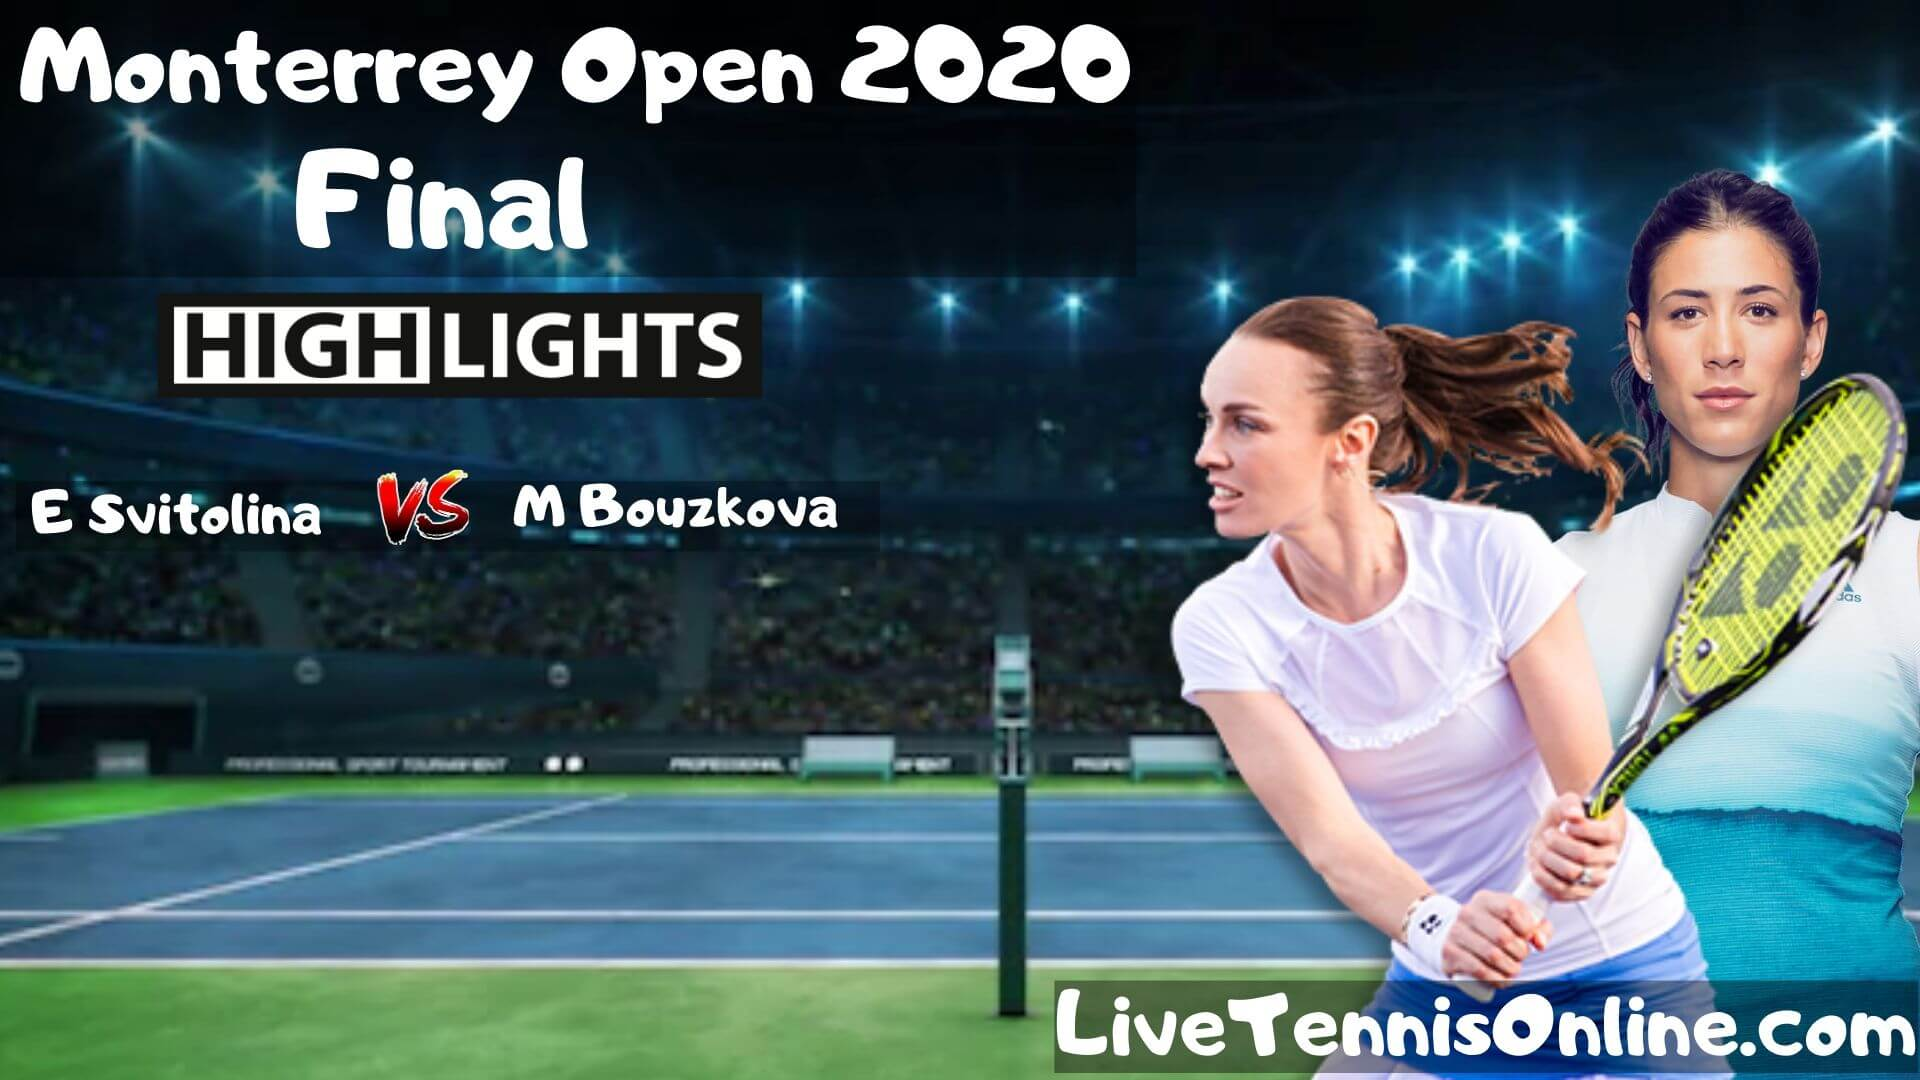 E Svitolina Vs M Bouzkova Highlights 2020 Final Monterrey Open